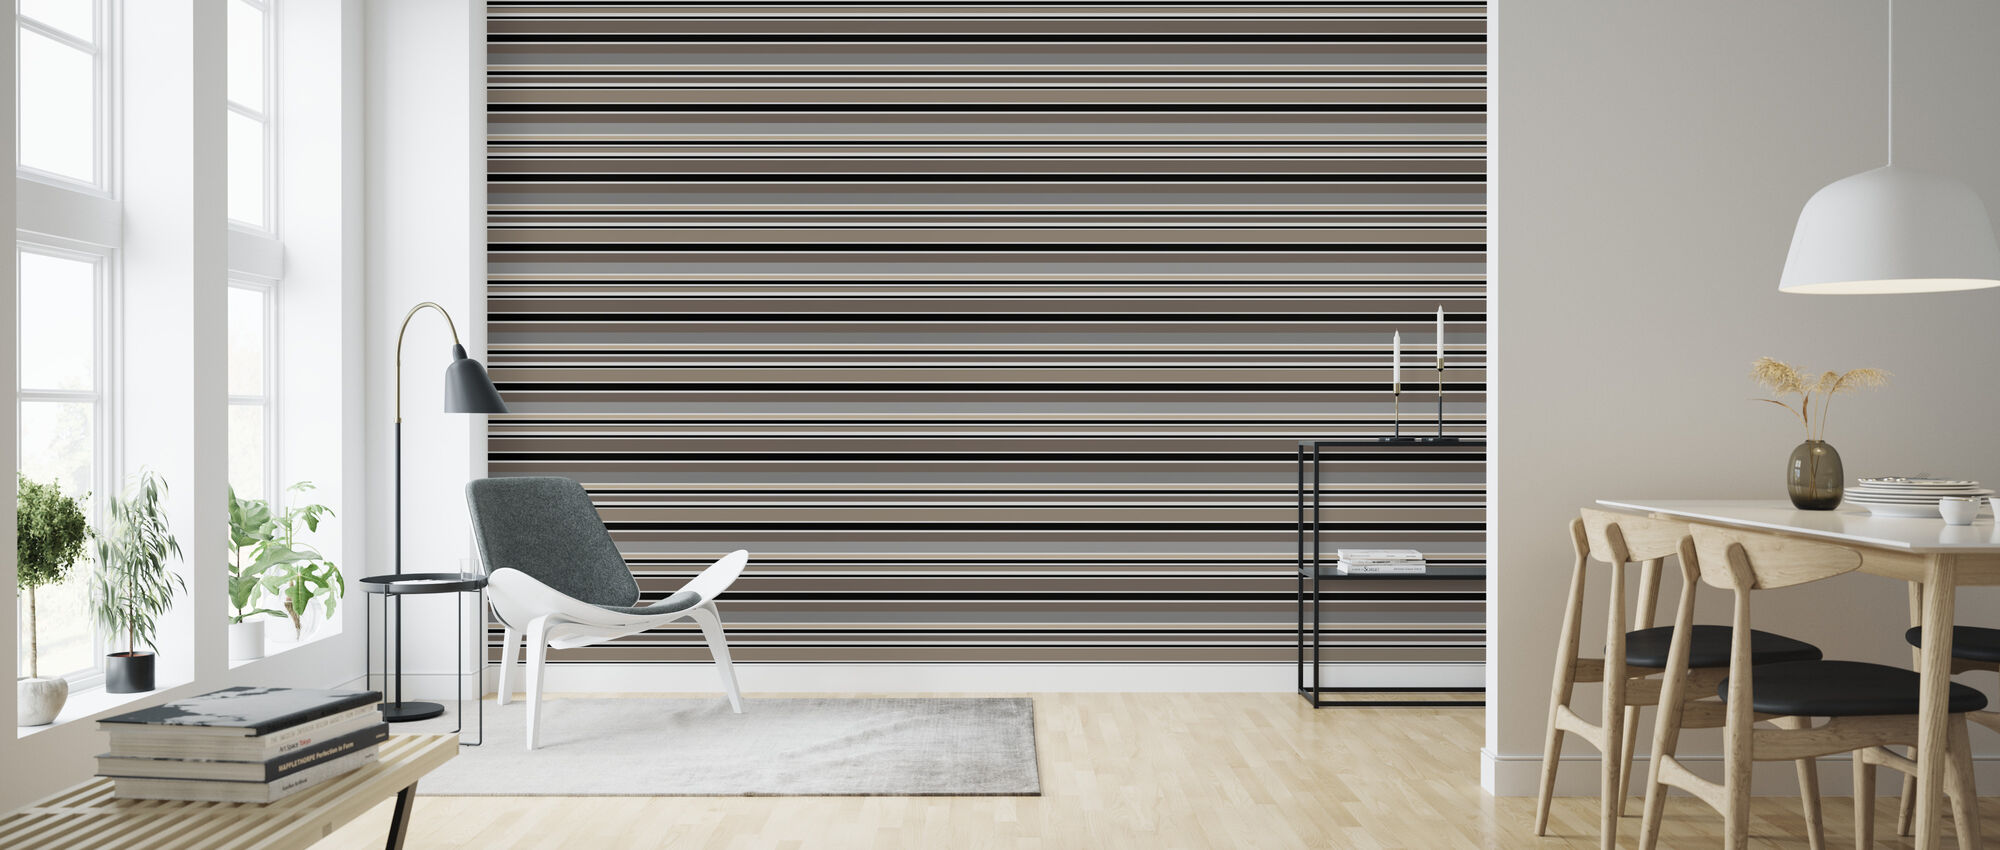 Stripe Sand - Wallpaper - Living Room